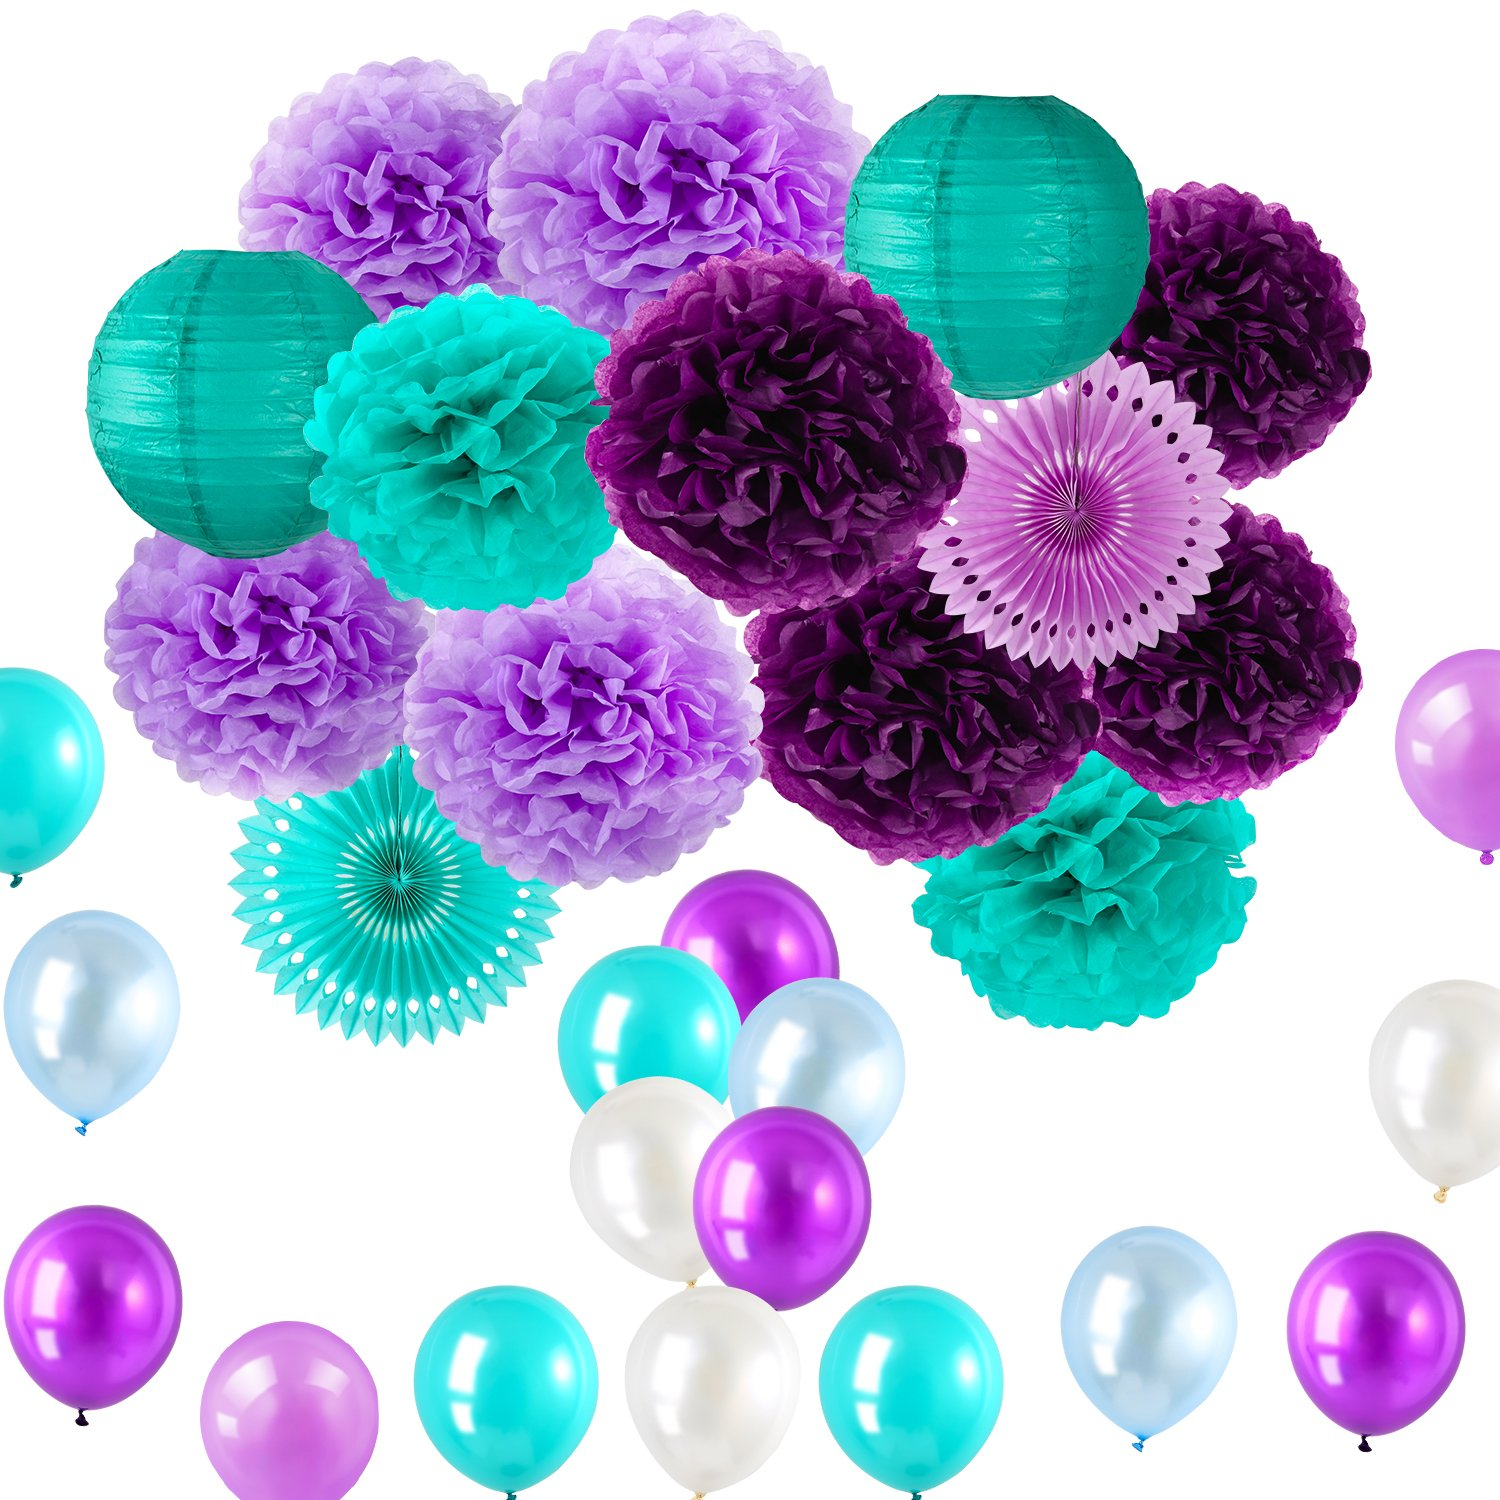 ZICA Little Mermaid Party Supplies And DecorationsMermaid Pom Poms Lanterns Fans Balloons Teal Tiffany Blue